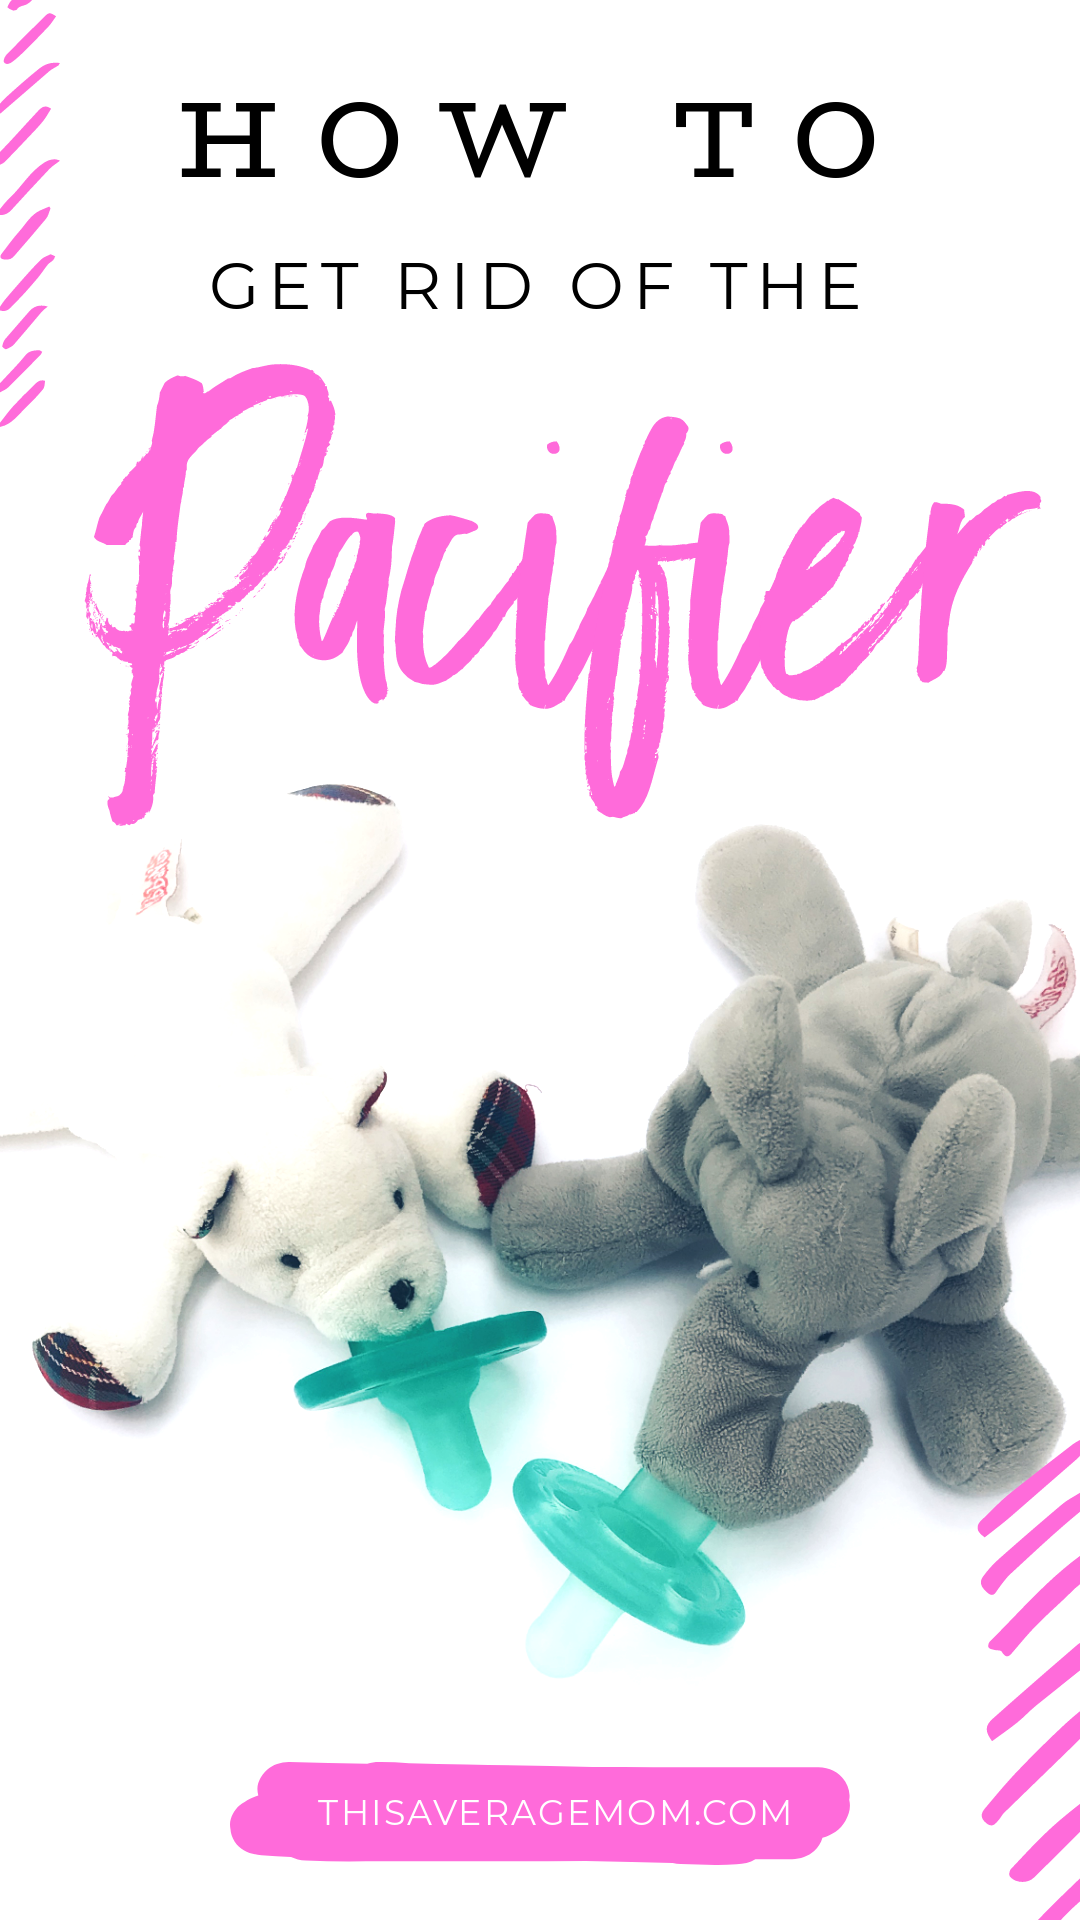 Wondering how to get rid of the pacifier? Is your child getting a little too old for a binky? Sharing my experience (x2) on kicking the paci habit and giving you my top tips! #pacifier #baby #toddler #motherhood